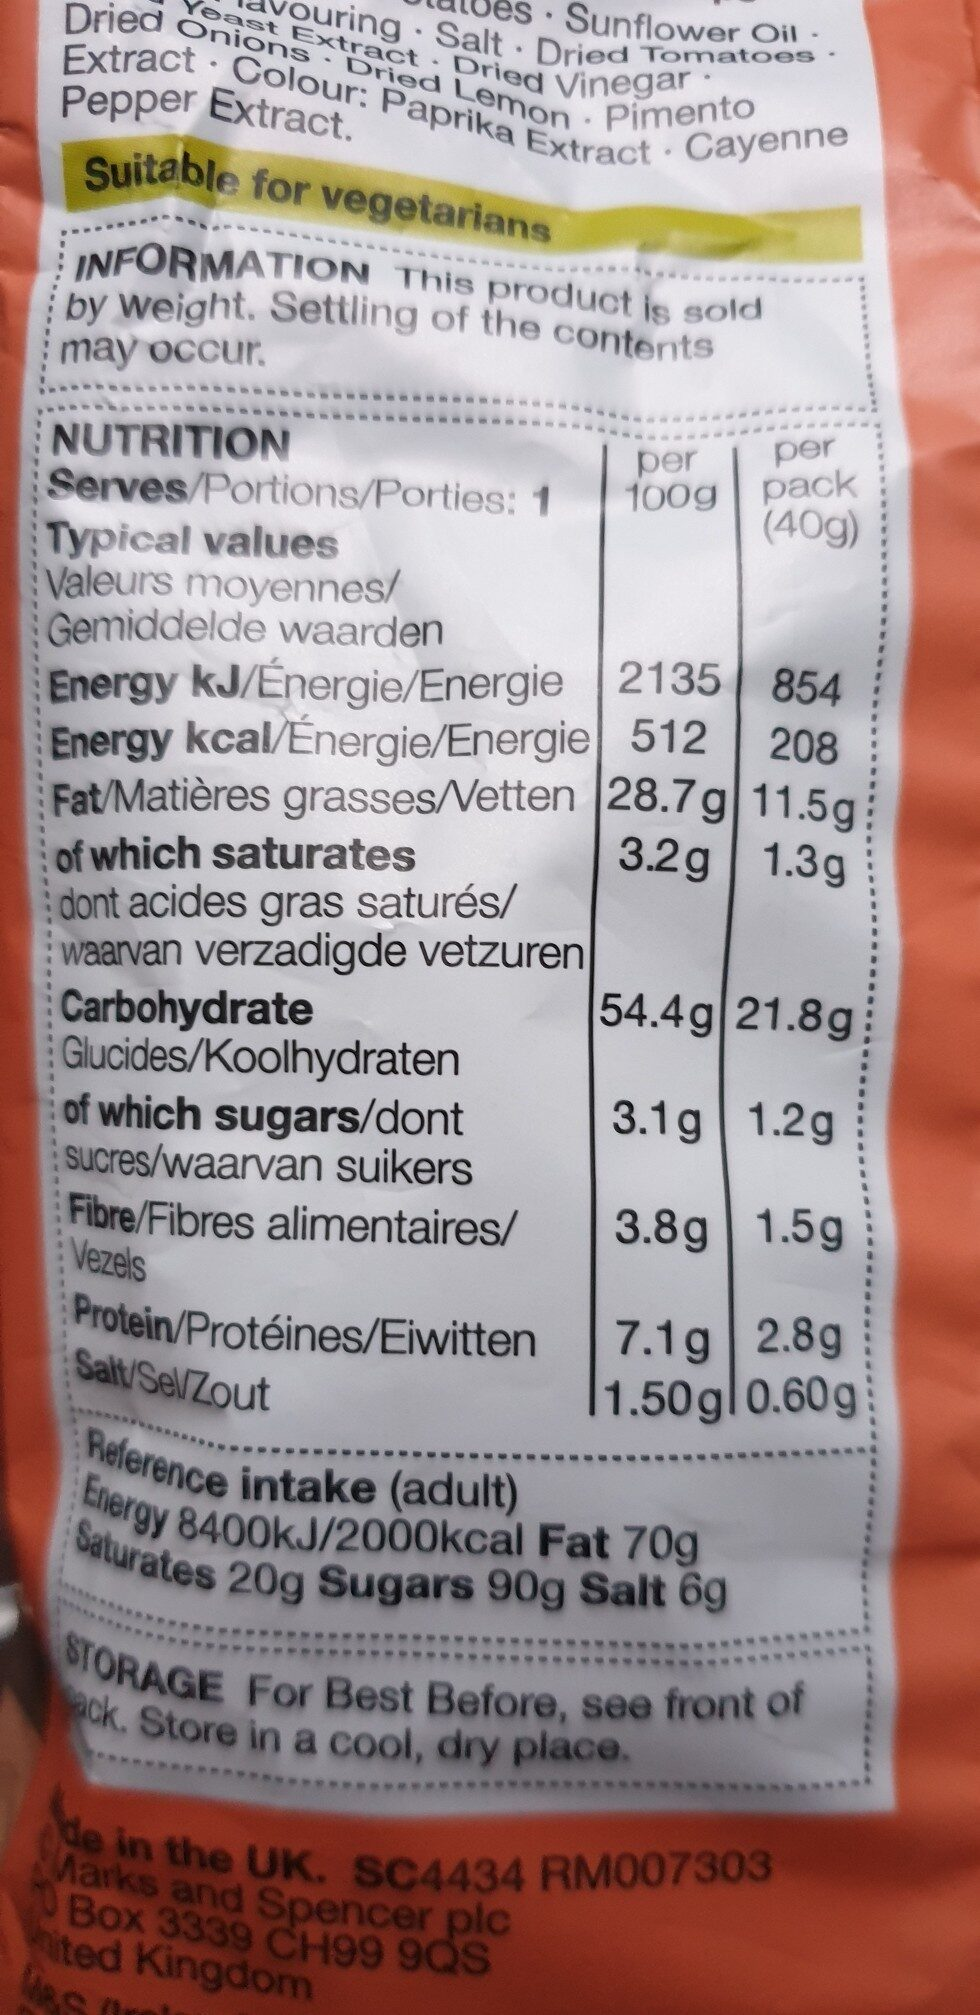 Prawn Cocktail Hand Cooked Crisps - Nutrition facts - en